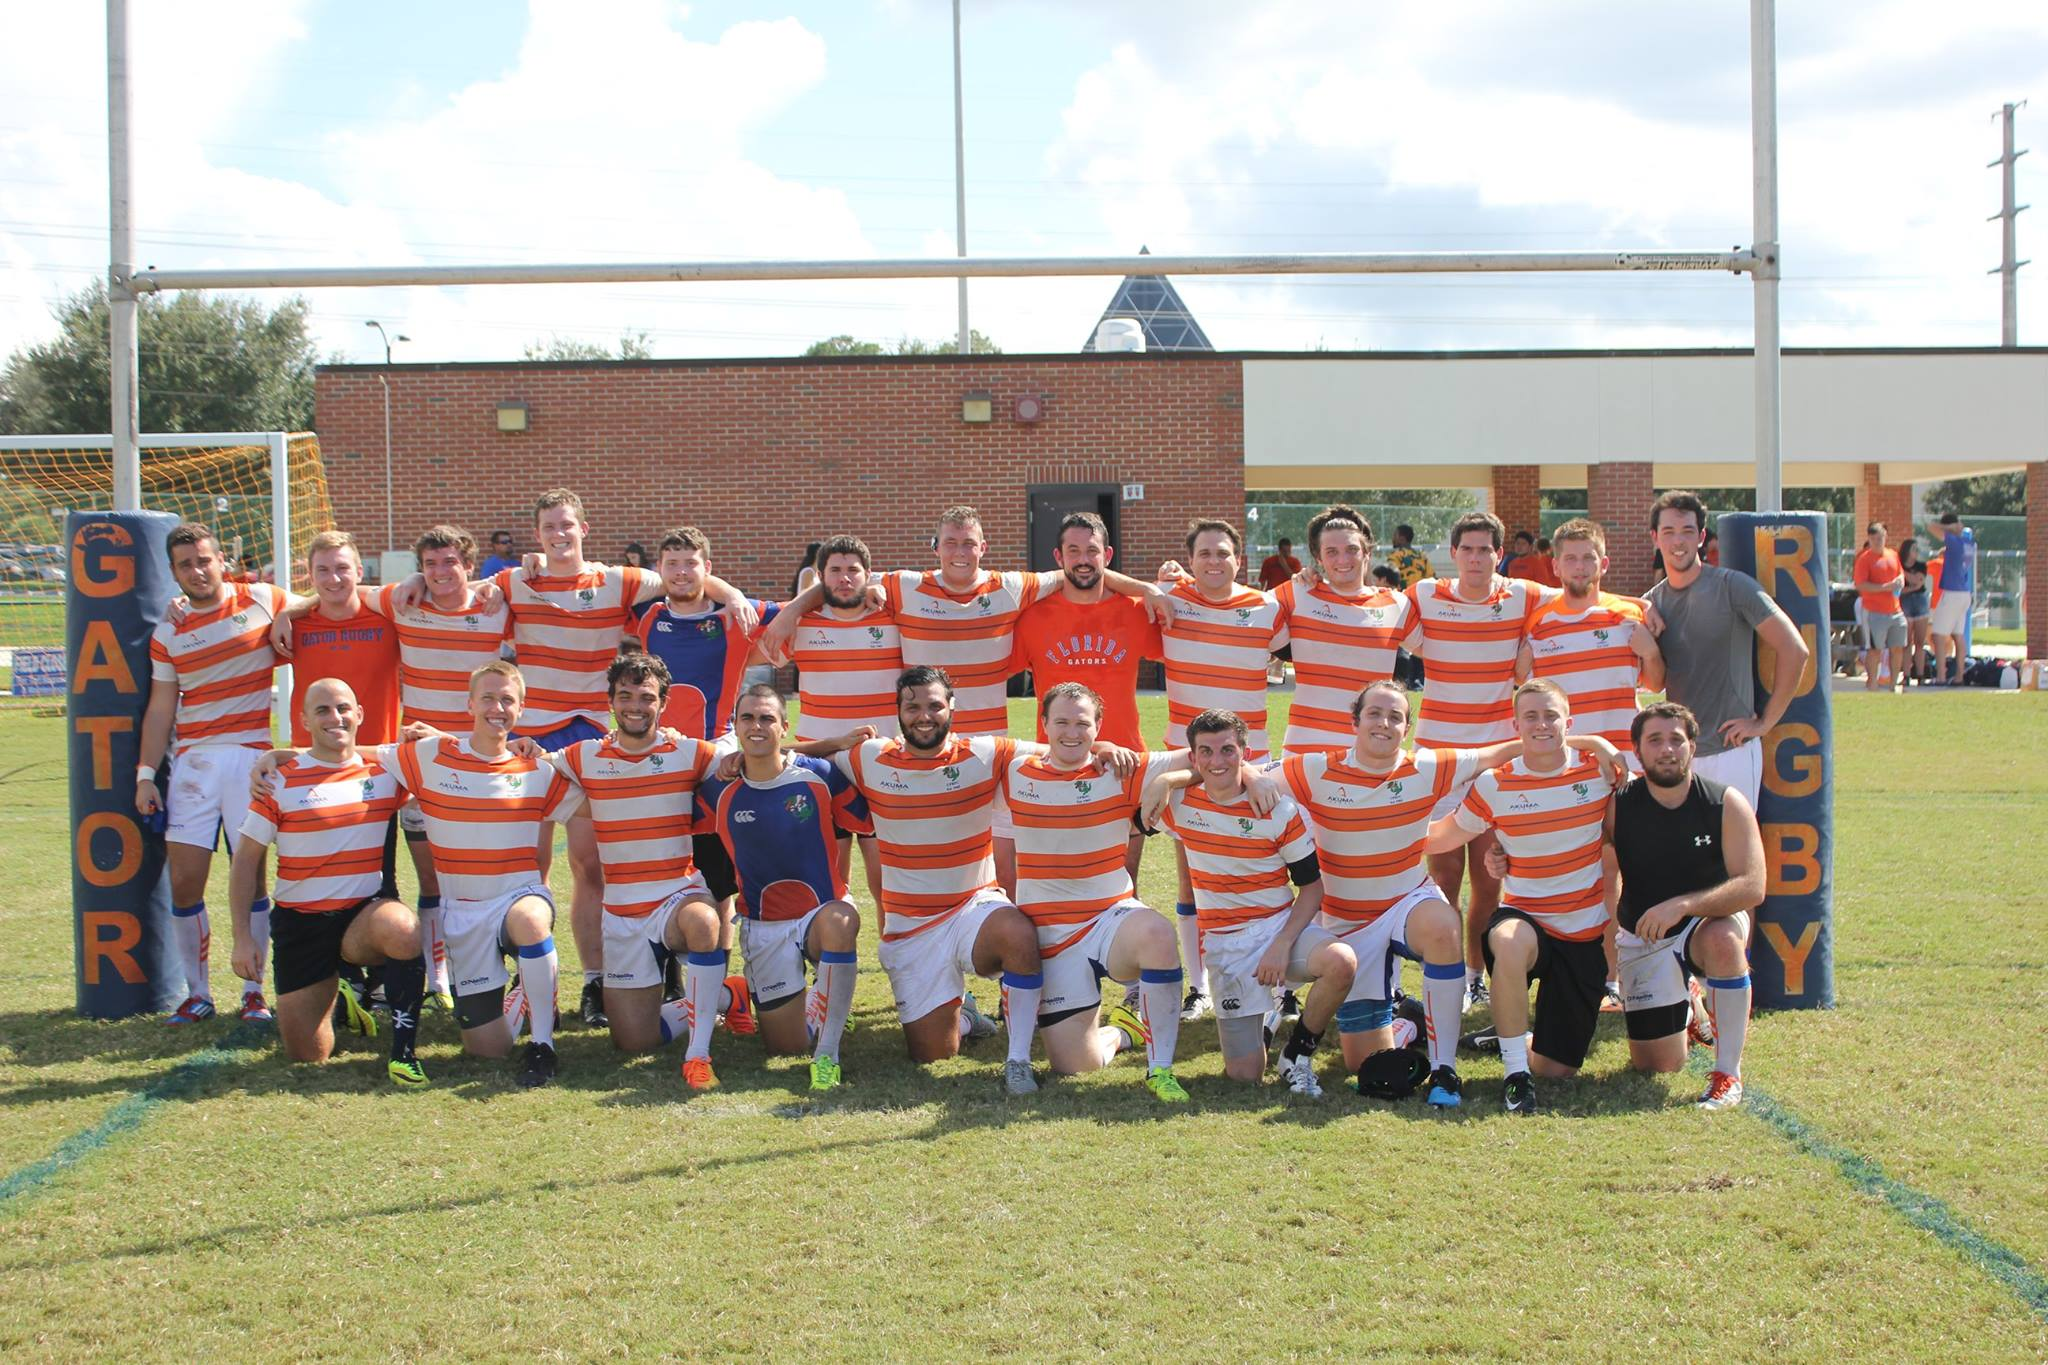 Photo by University of Florida Rugby Club